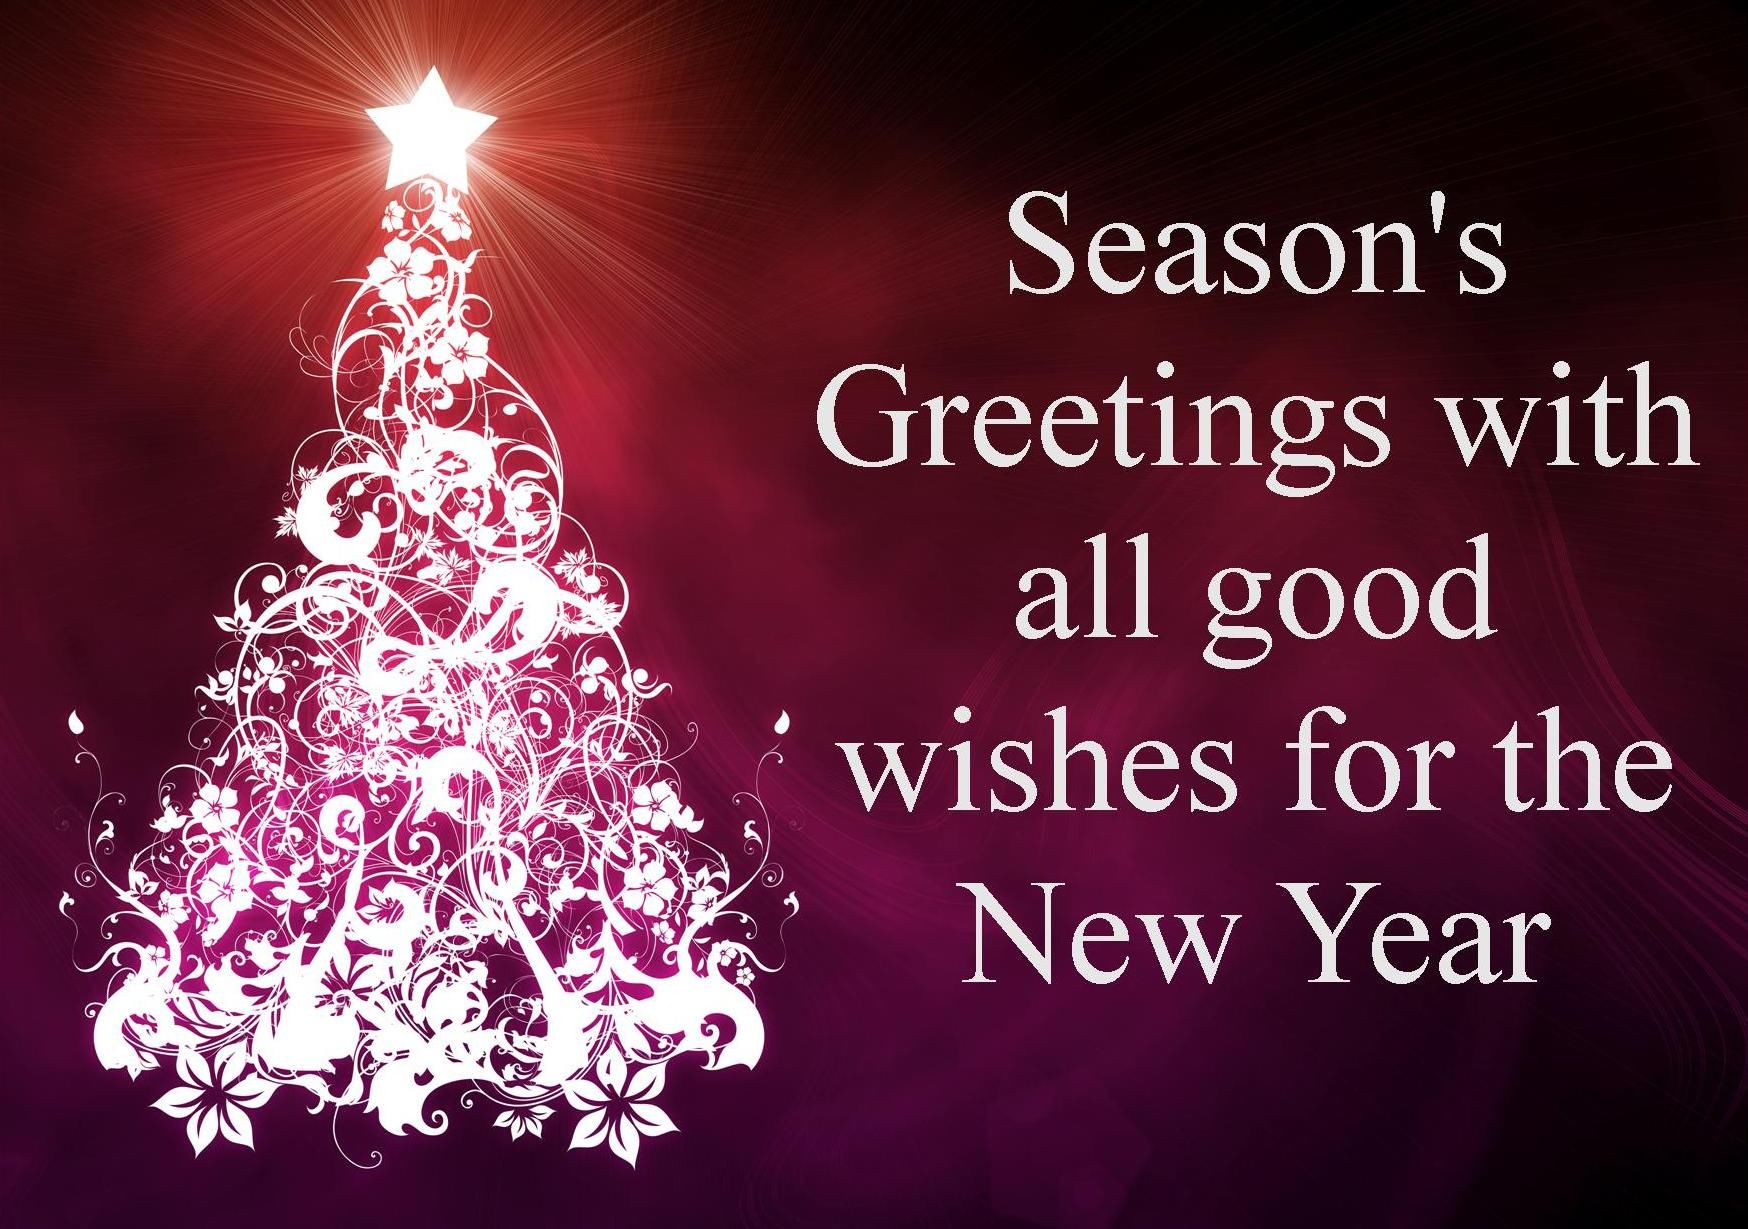 seasons greetings with all good wishes for the new year